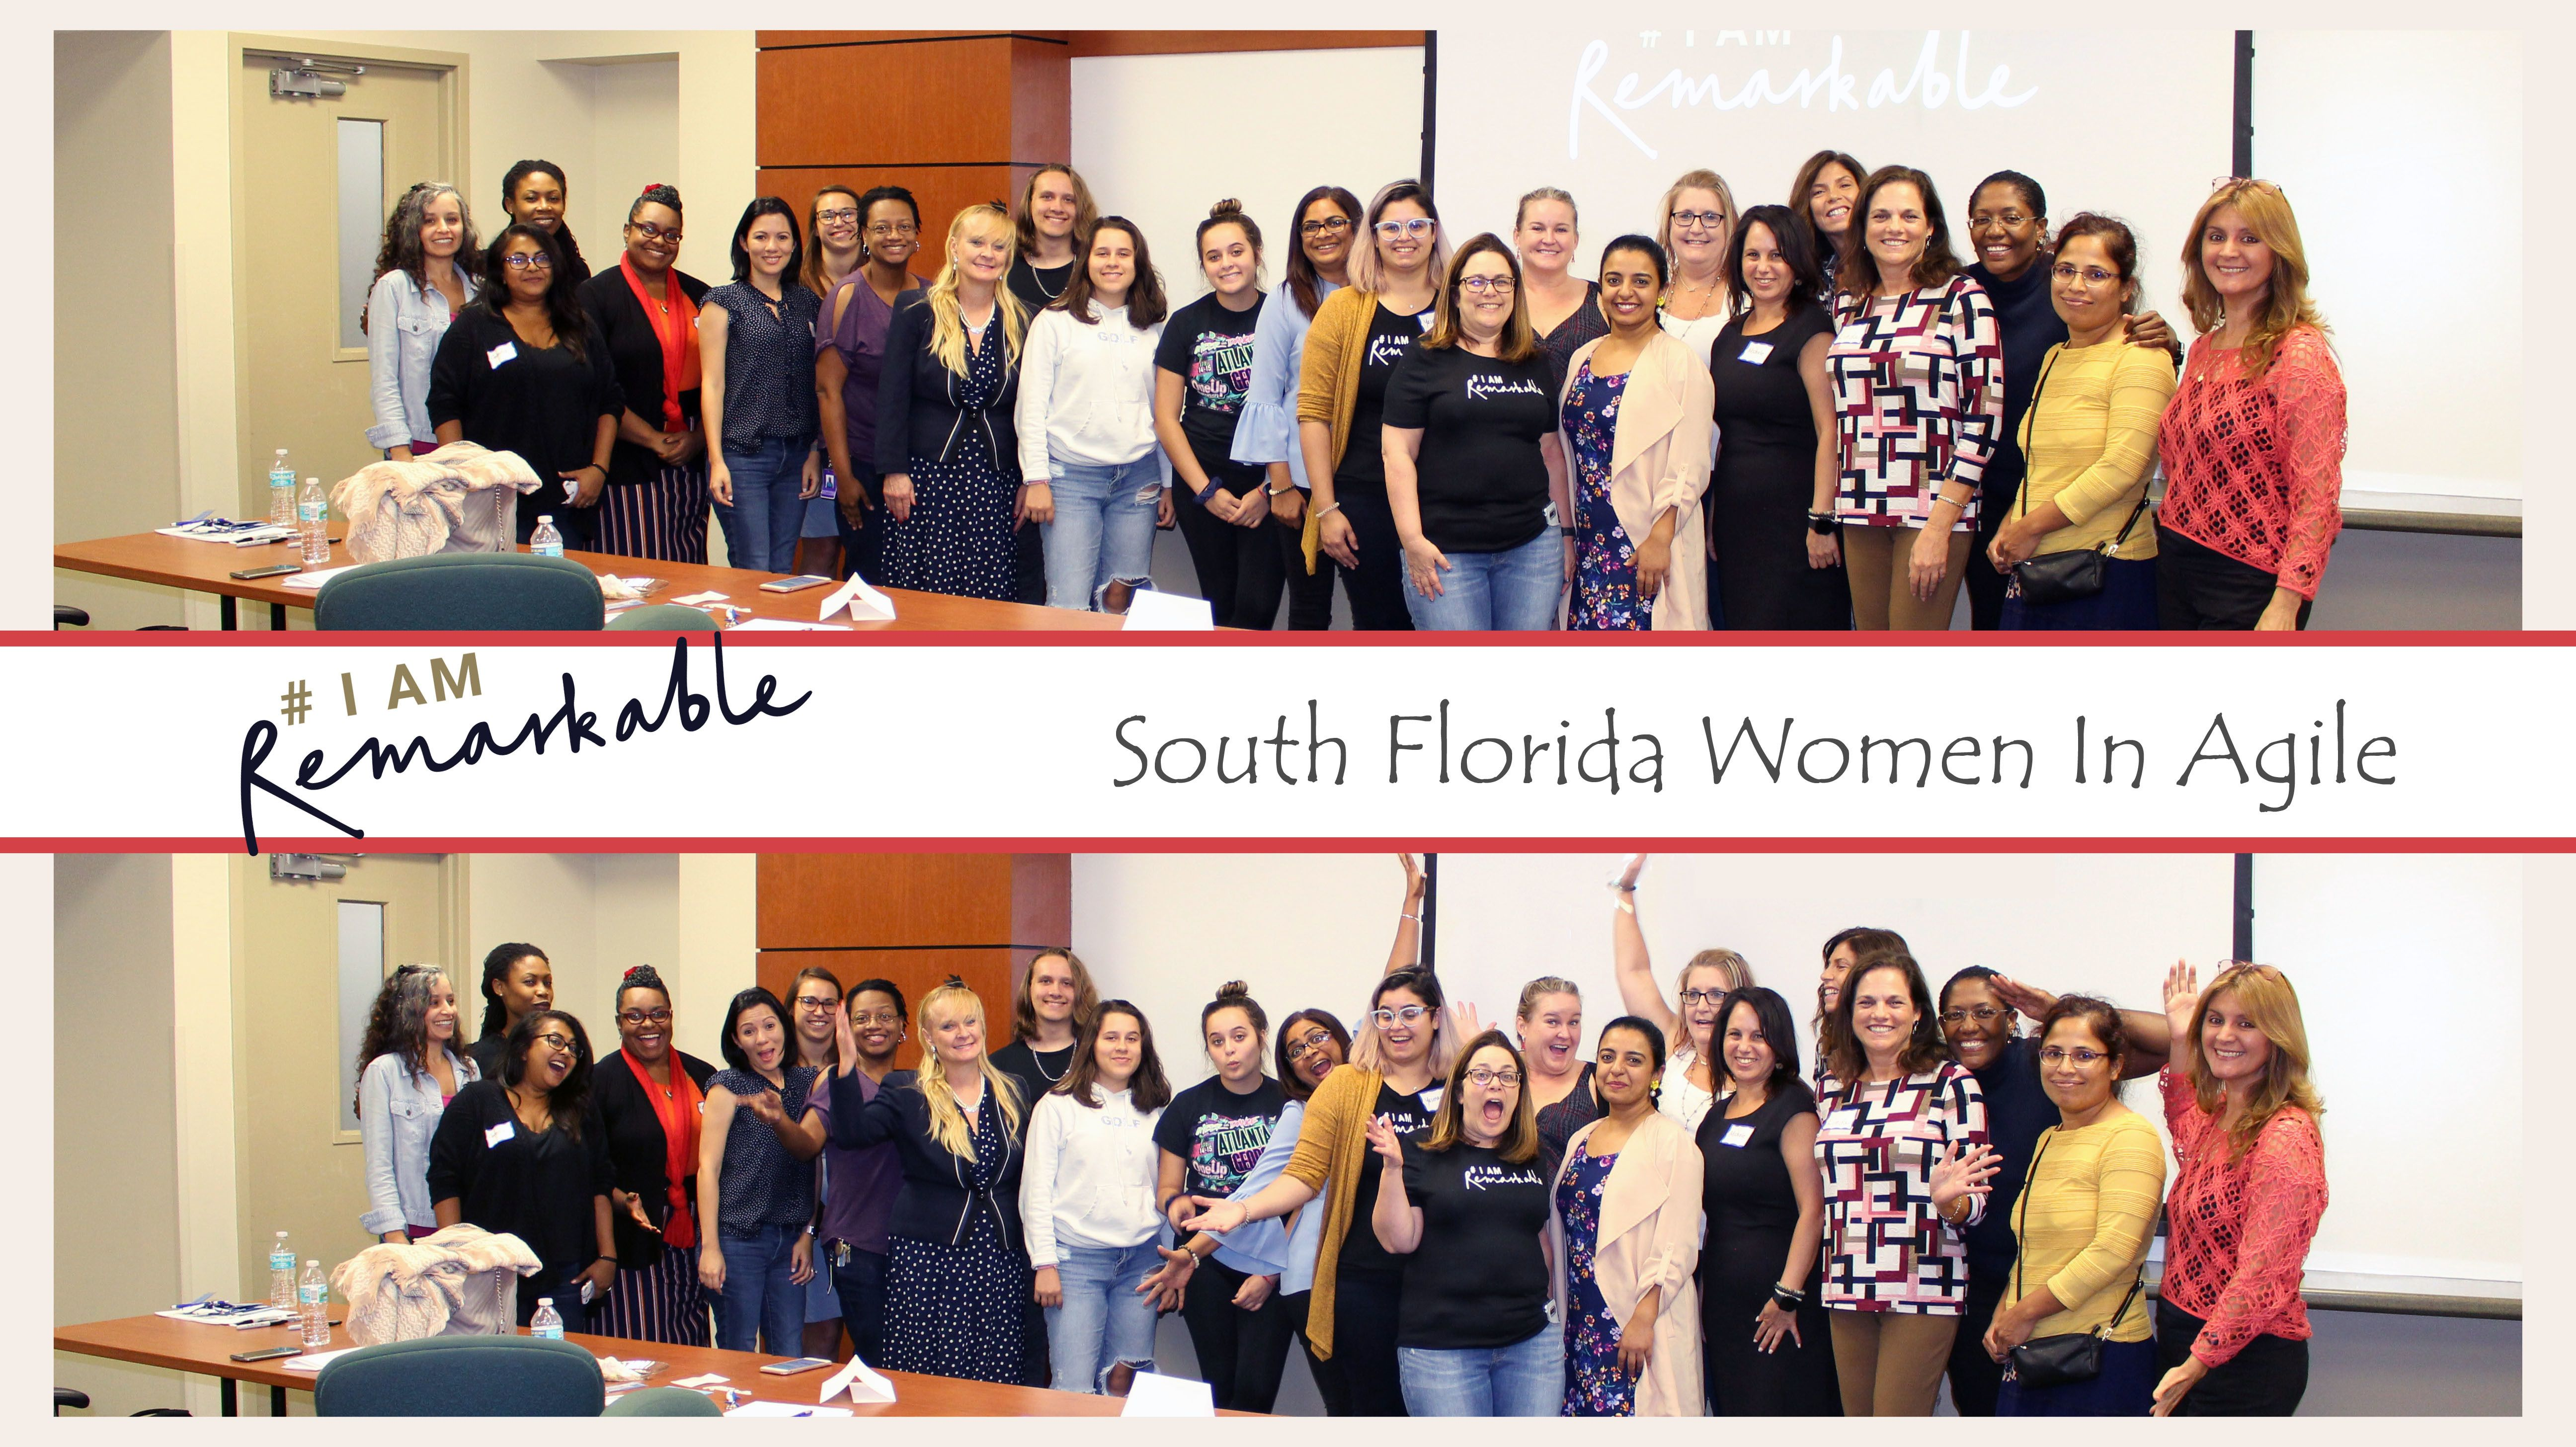 Empowering South Florida Women In Agile